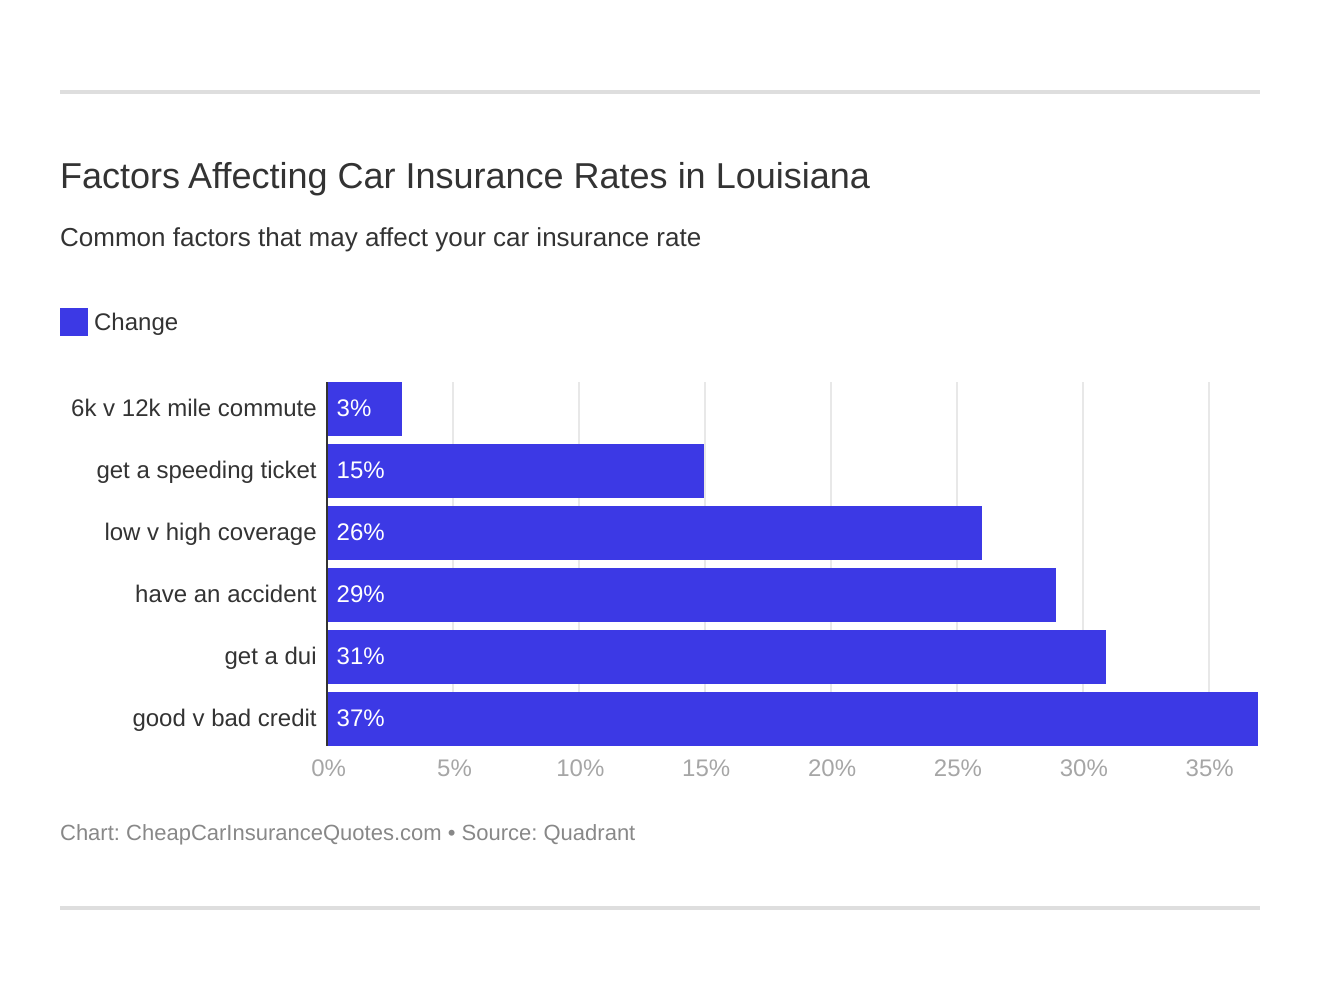 Factors Affecting Car Insurance Rates in Louisiana